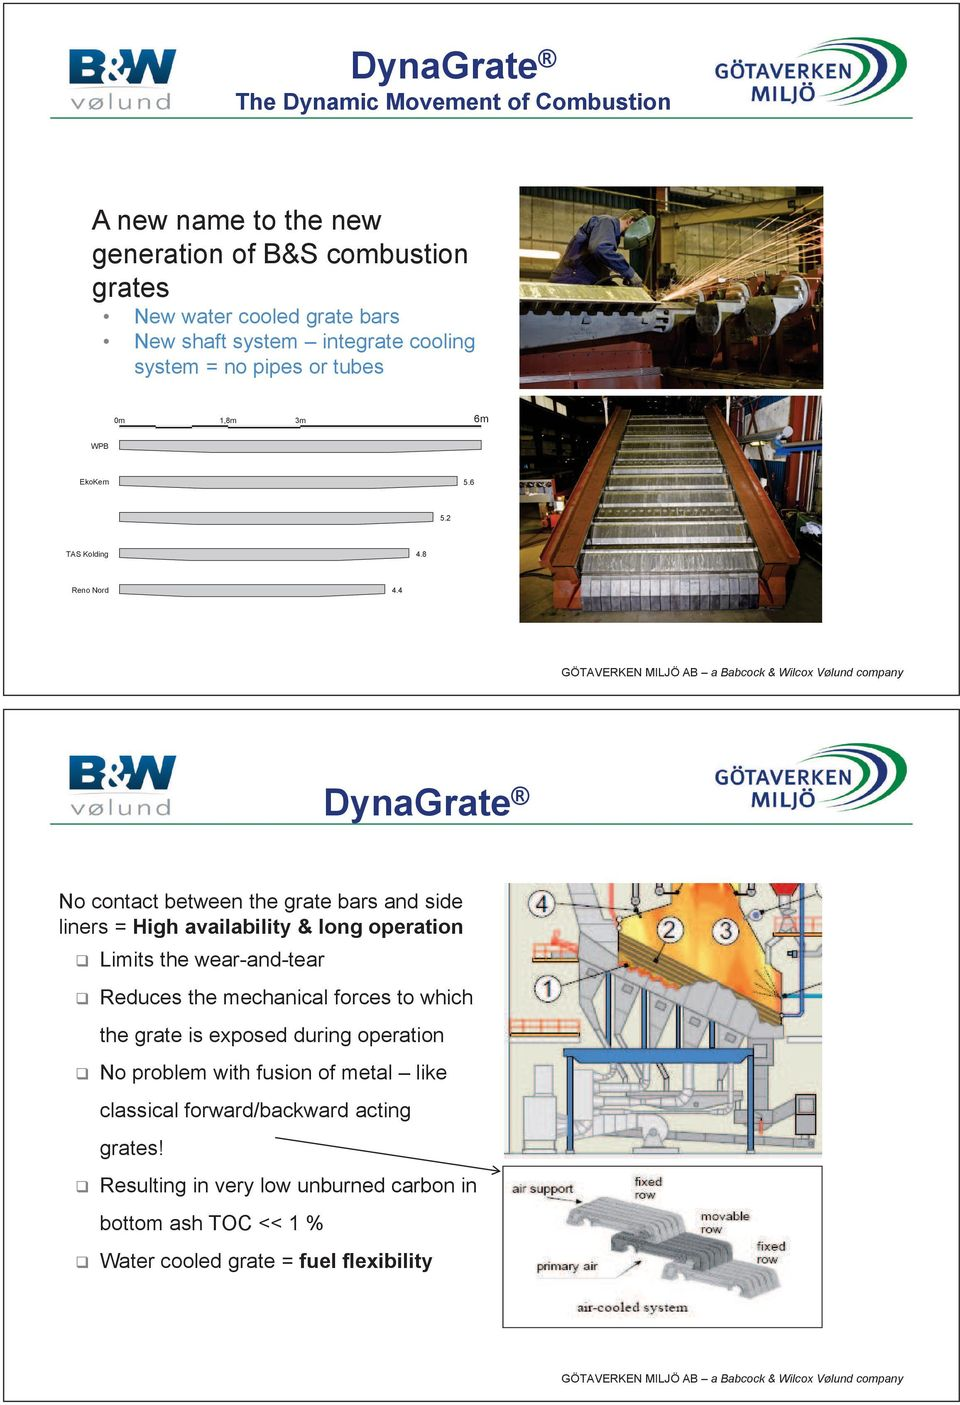 4 DynaGrate No contact between the grate bars and side liners = High availability & long operation Limits the wear-and-tear Reduces the mechanical forces to